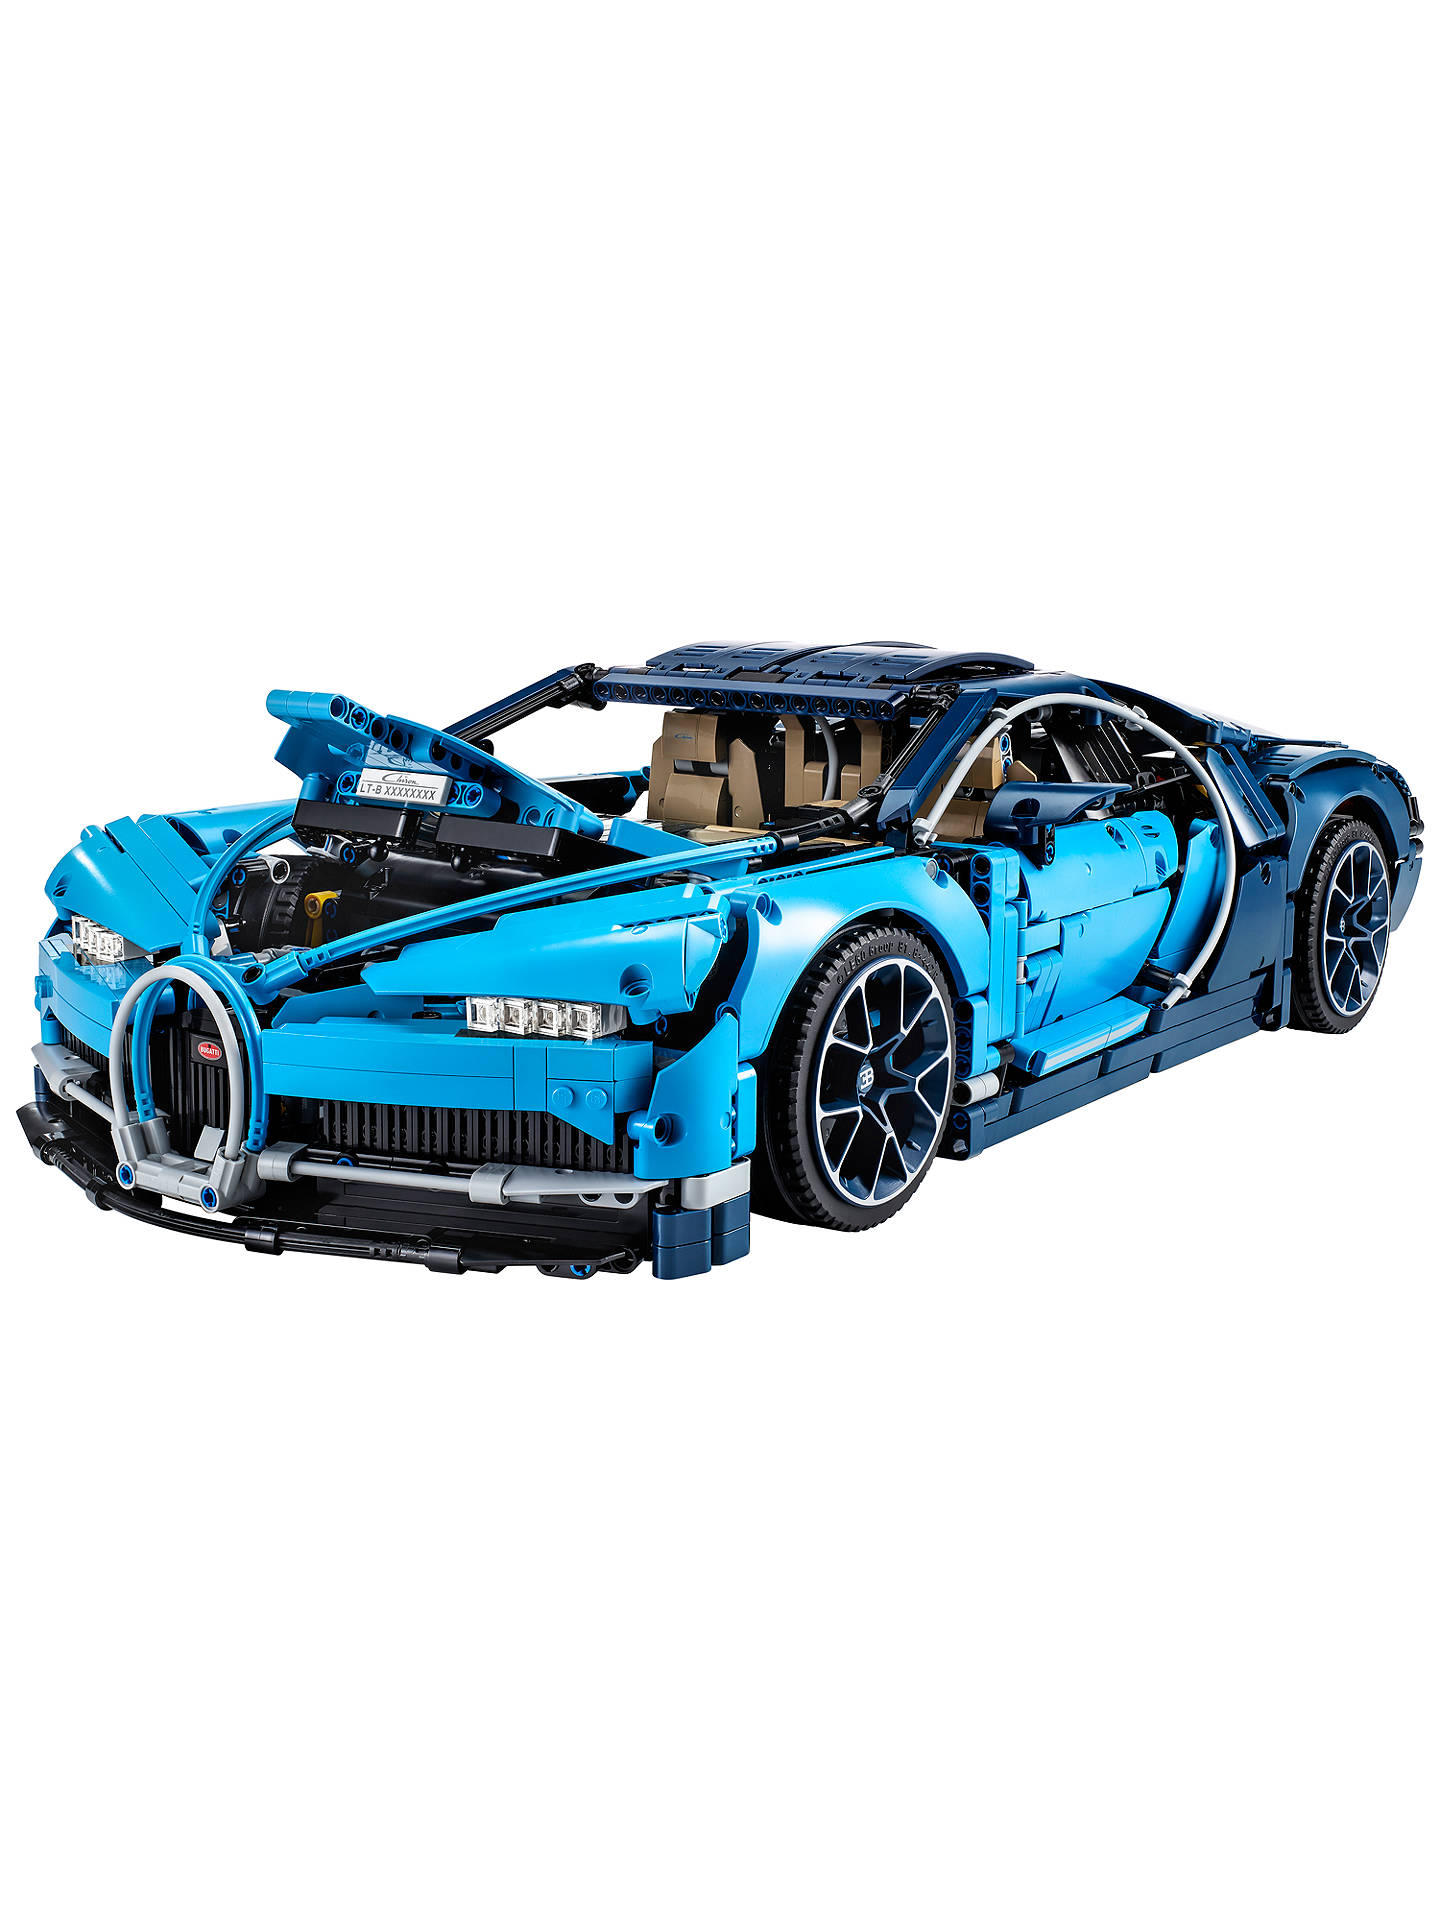 BuyLEGO Technic 42083 Bugatti Chiron Supercar Online at johnlewis.com